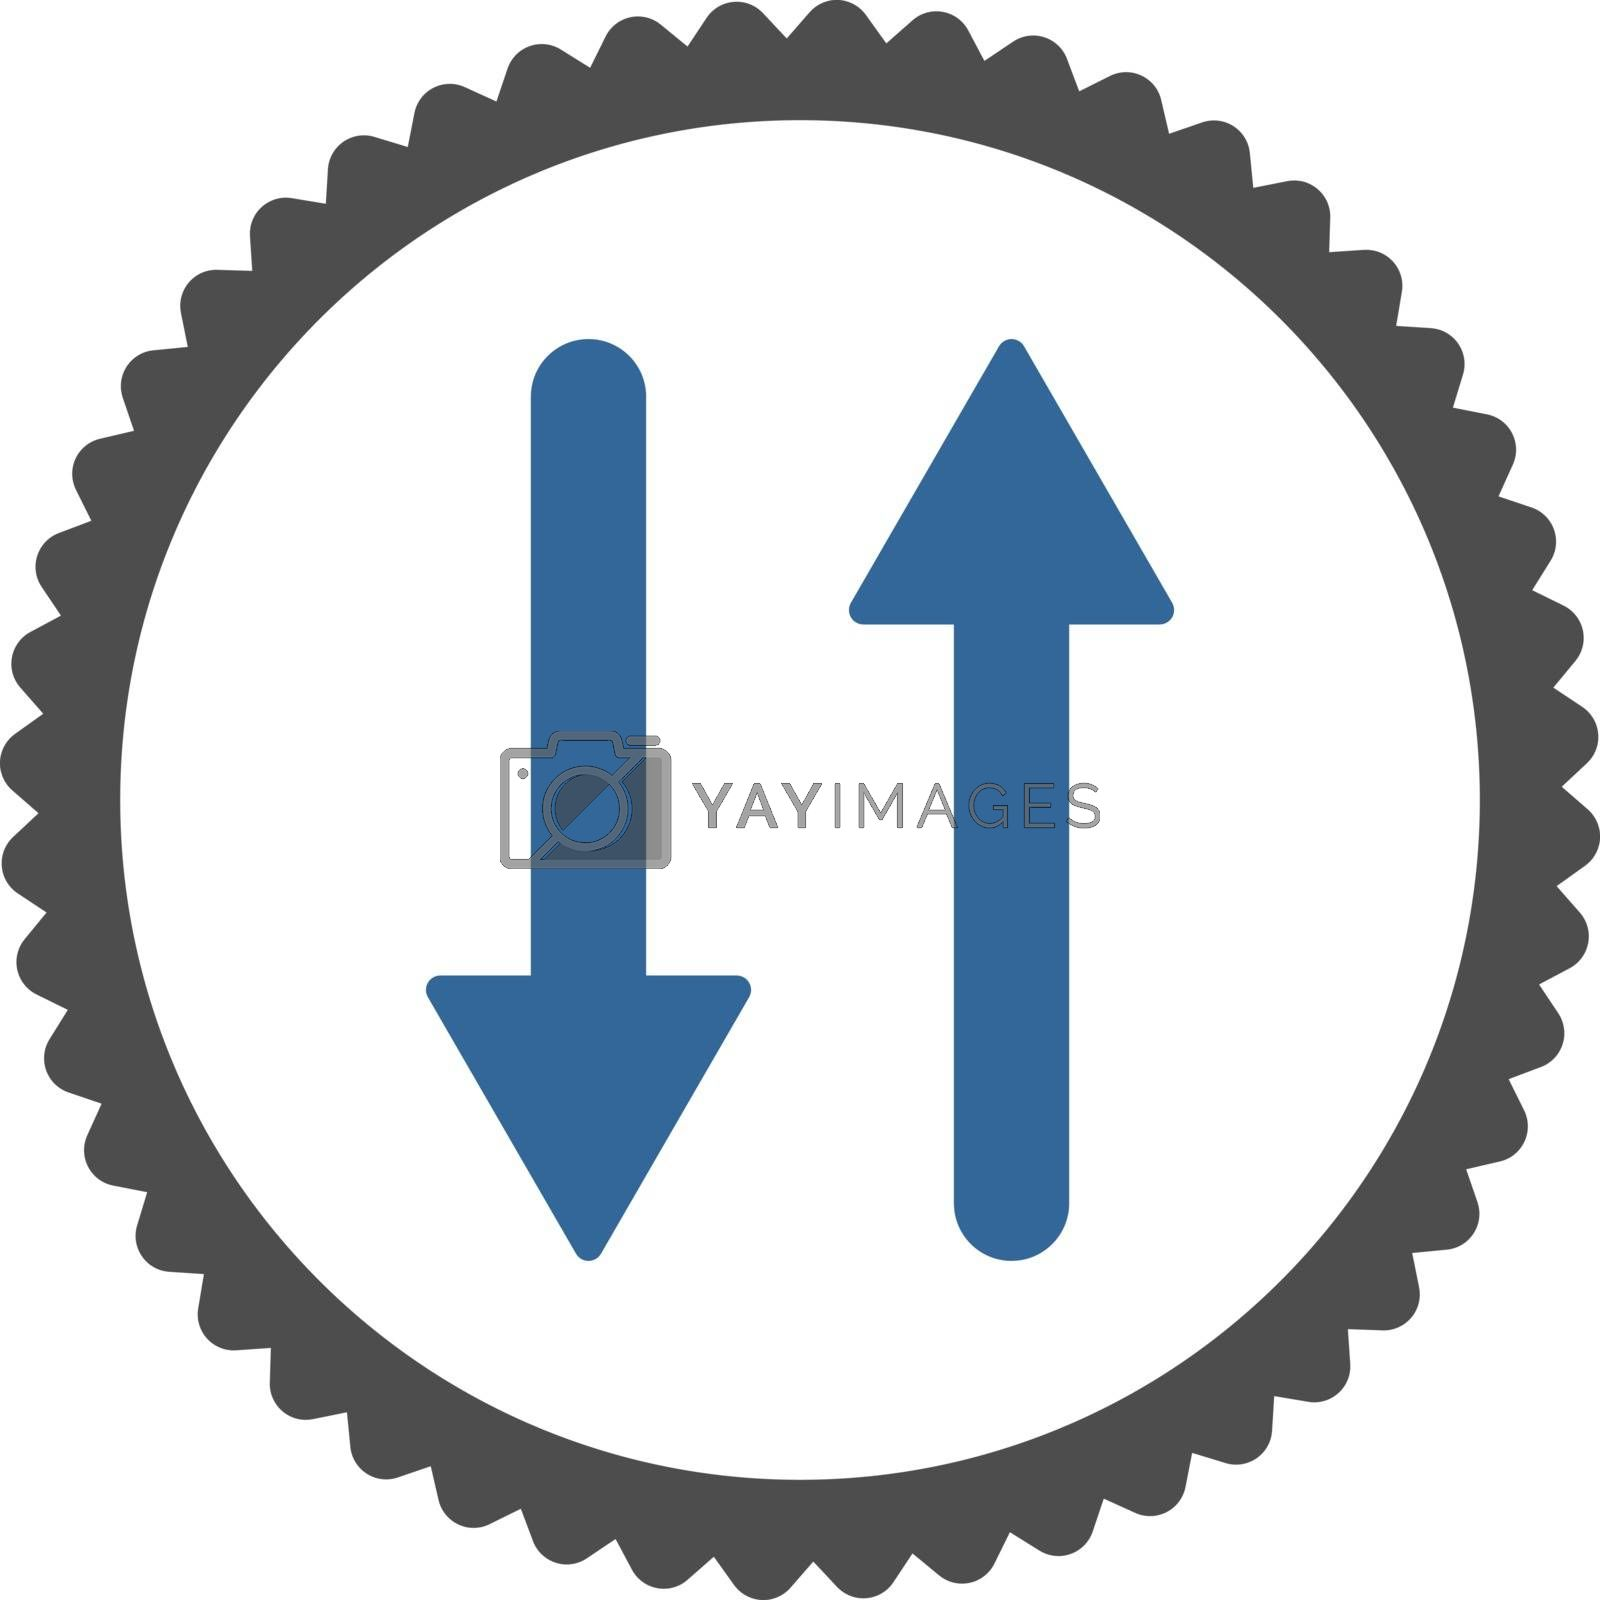 Arrows Exchange Vertical flat cobalt and gray colors round stamp icon by Aha-Soft